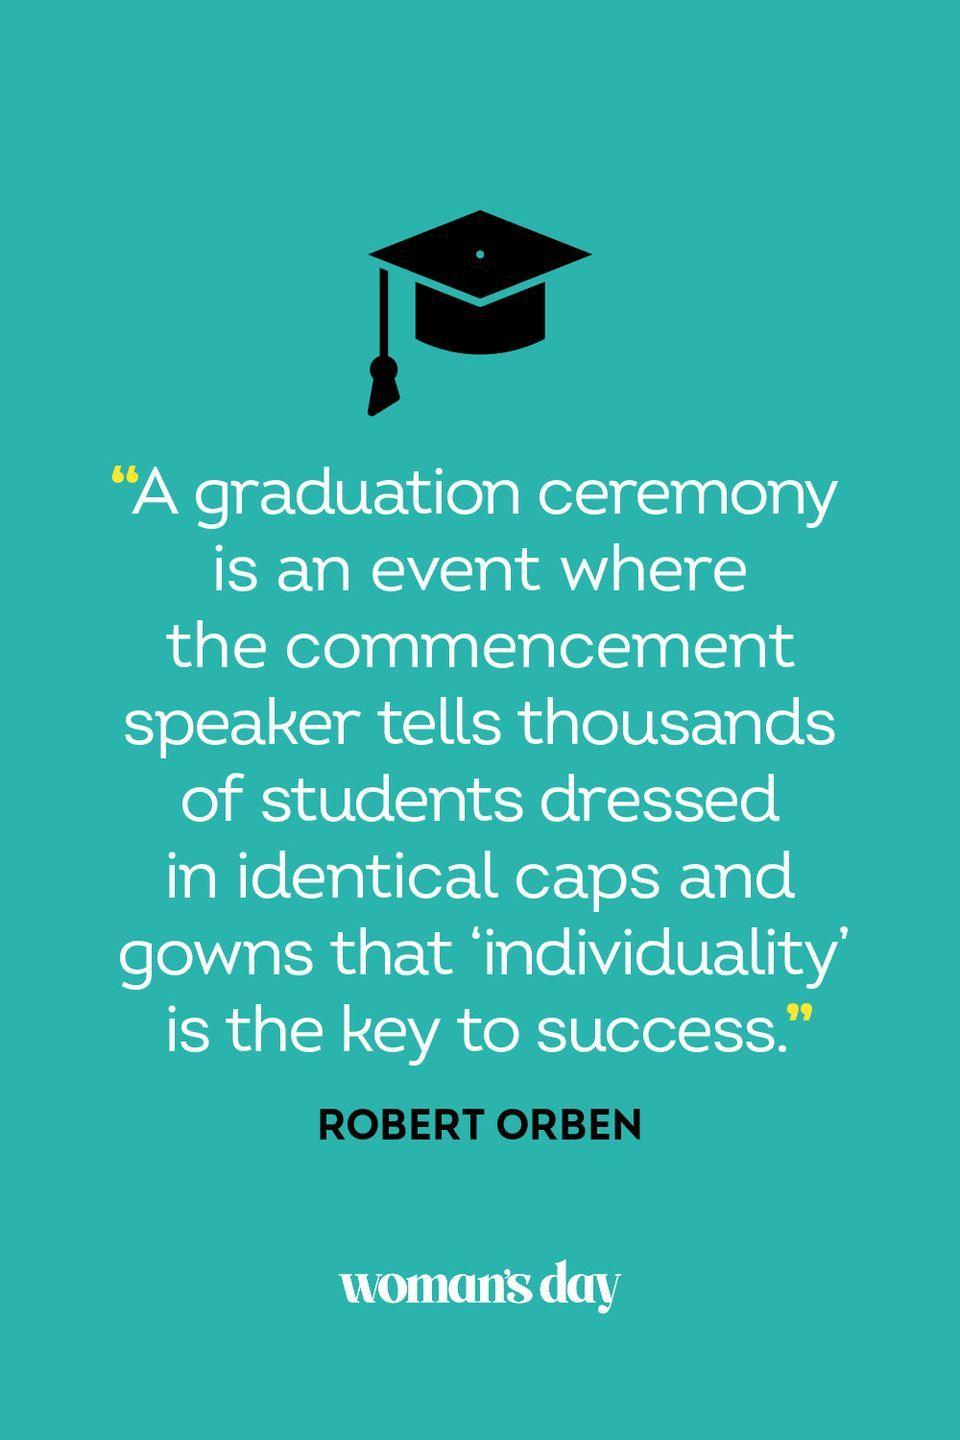 """<p>""""A graduation ceremony is an event where the commencement speaker tells thousands of students dressed in identical caps and gowns that 'individuality' is the key to success.""""</p>"""